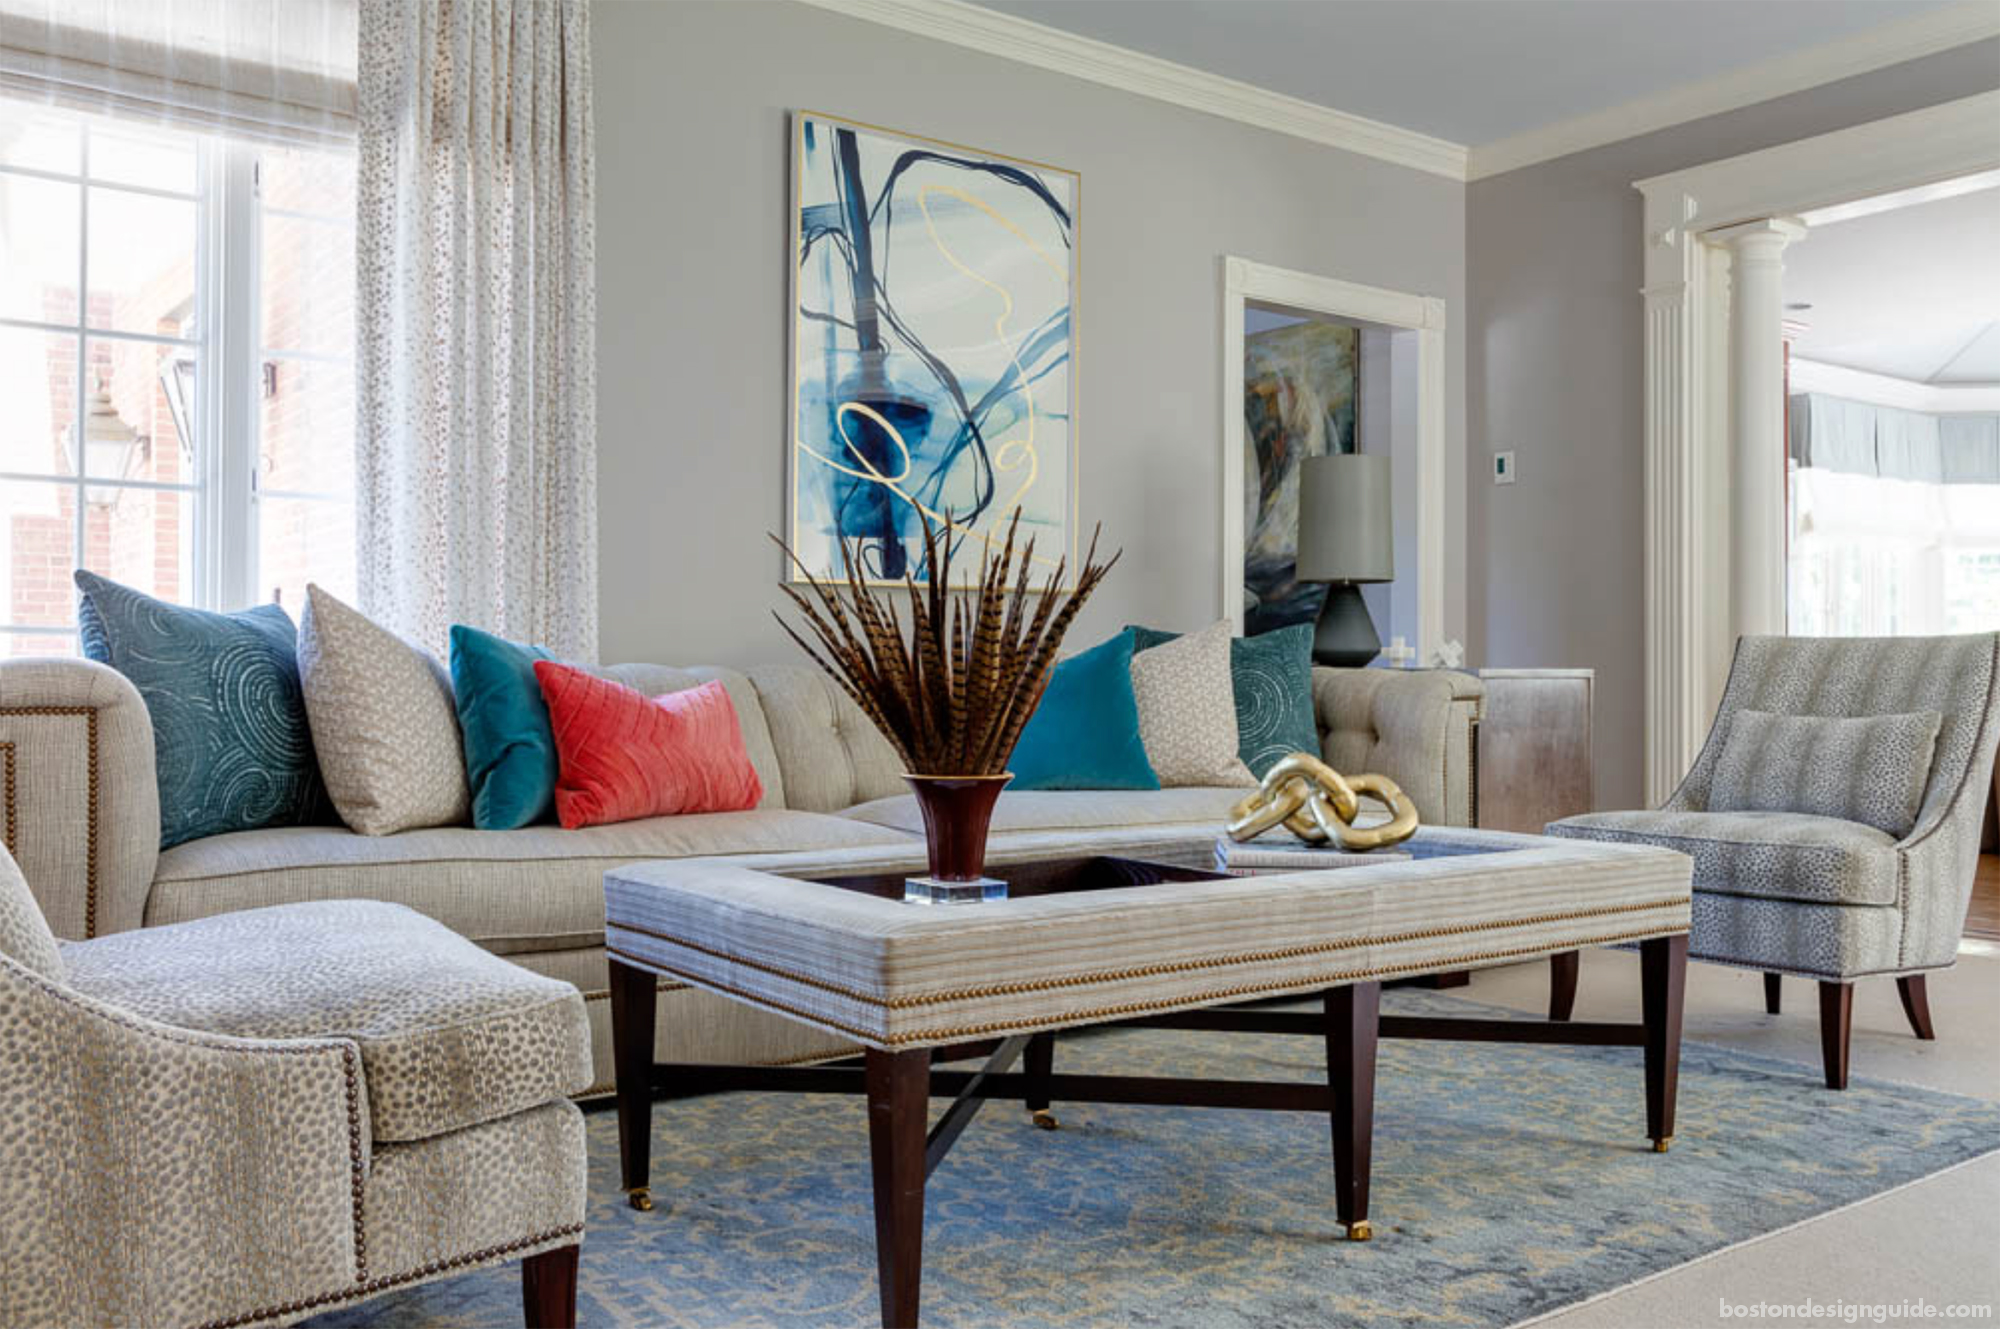 Furniture & Rug Pairings: Transitional Styles